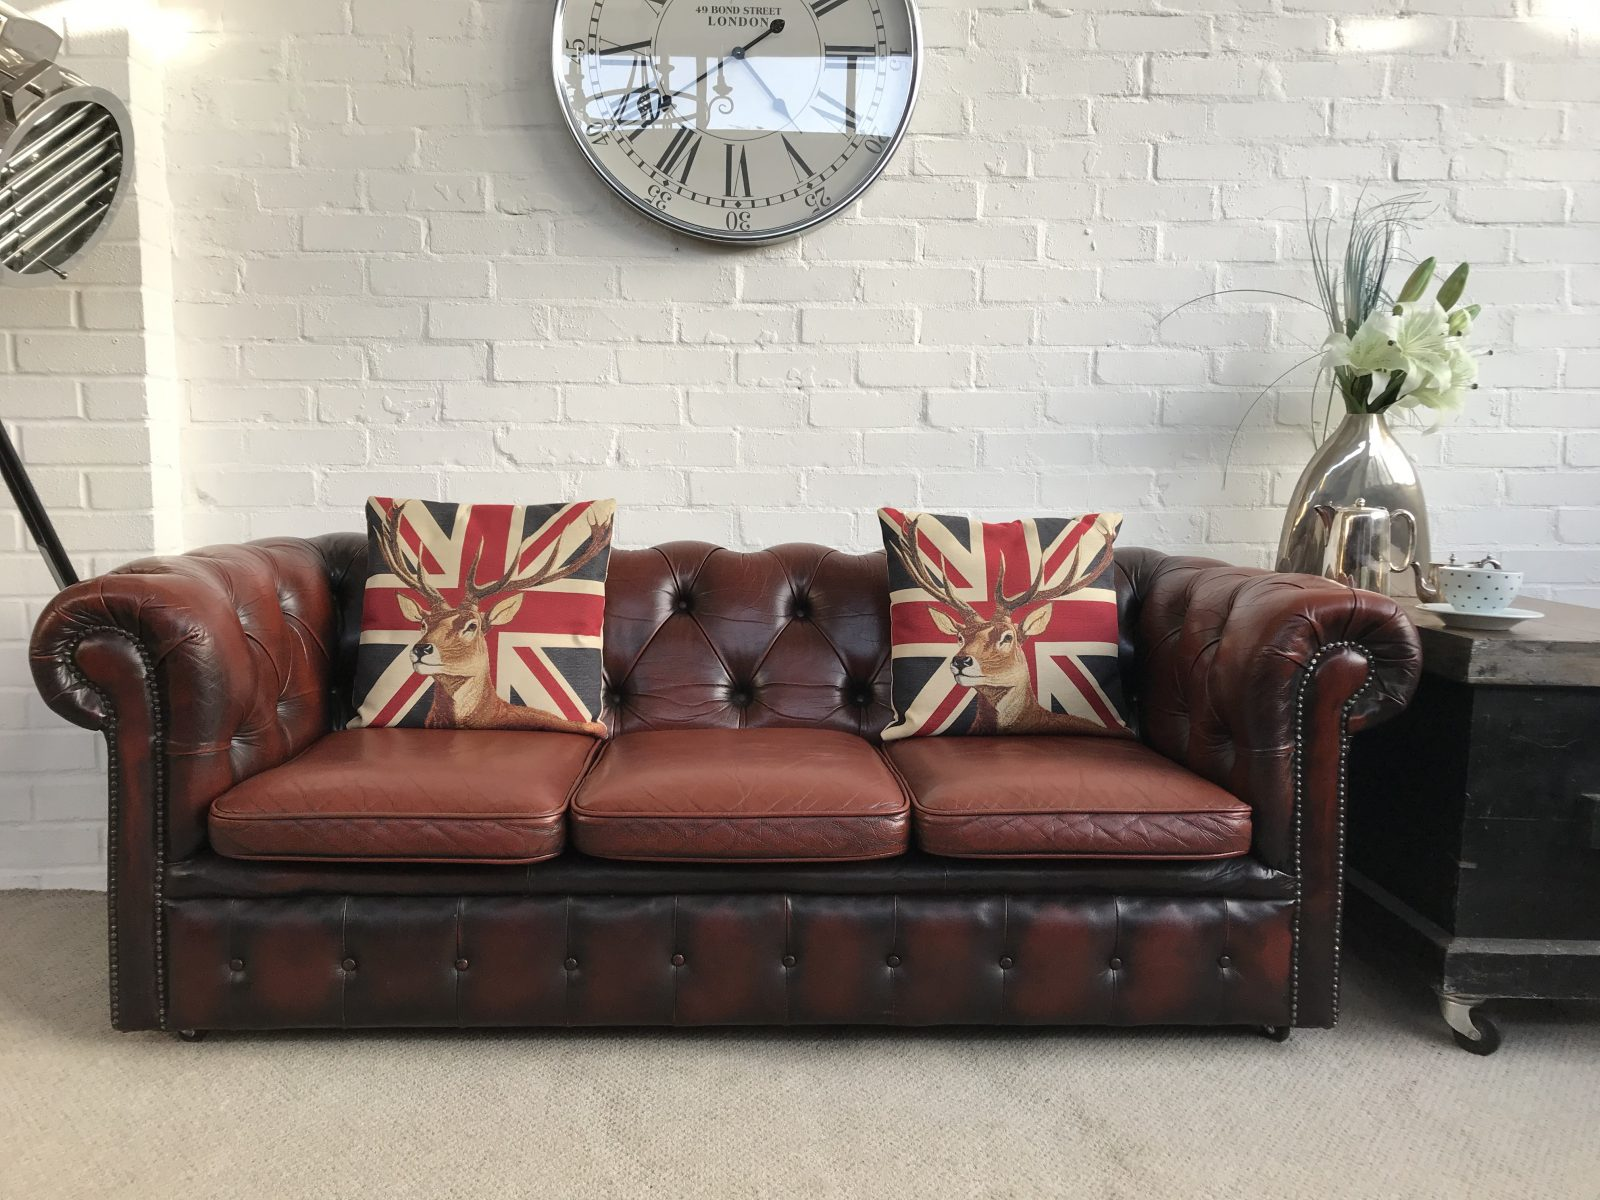 A Charming Small Vintage 3 Seater Chesterfield Sofa.